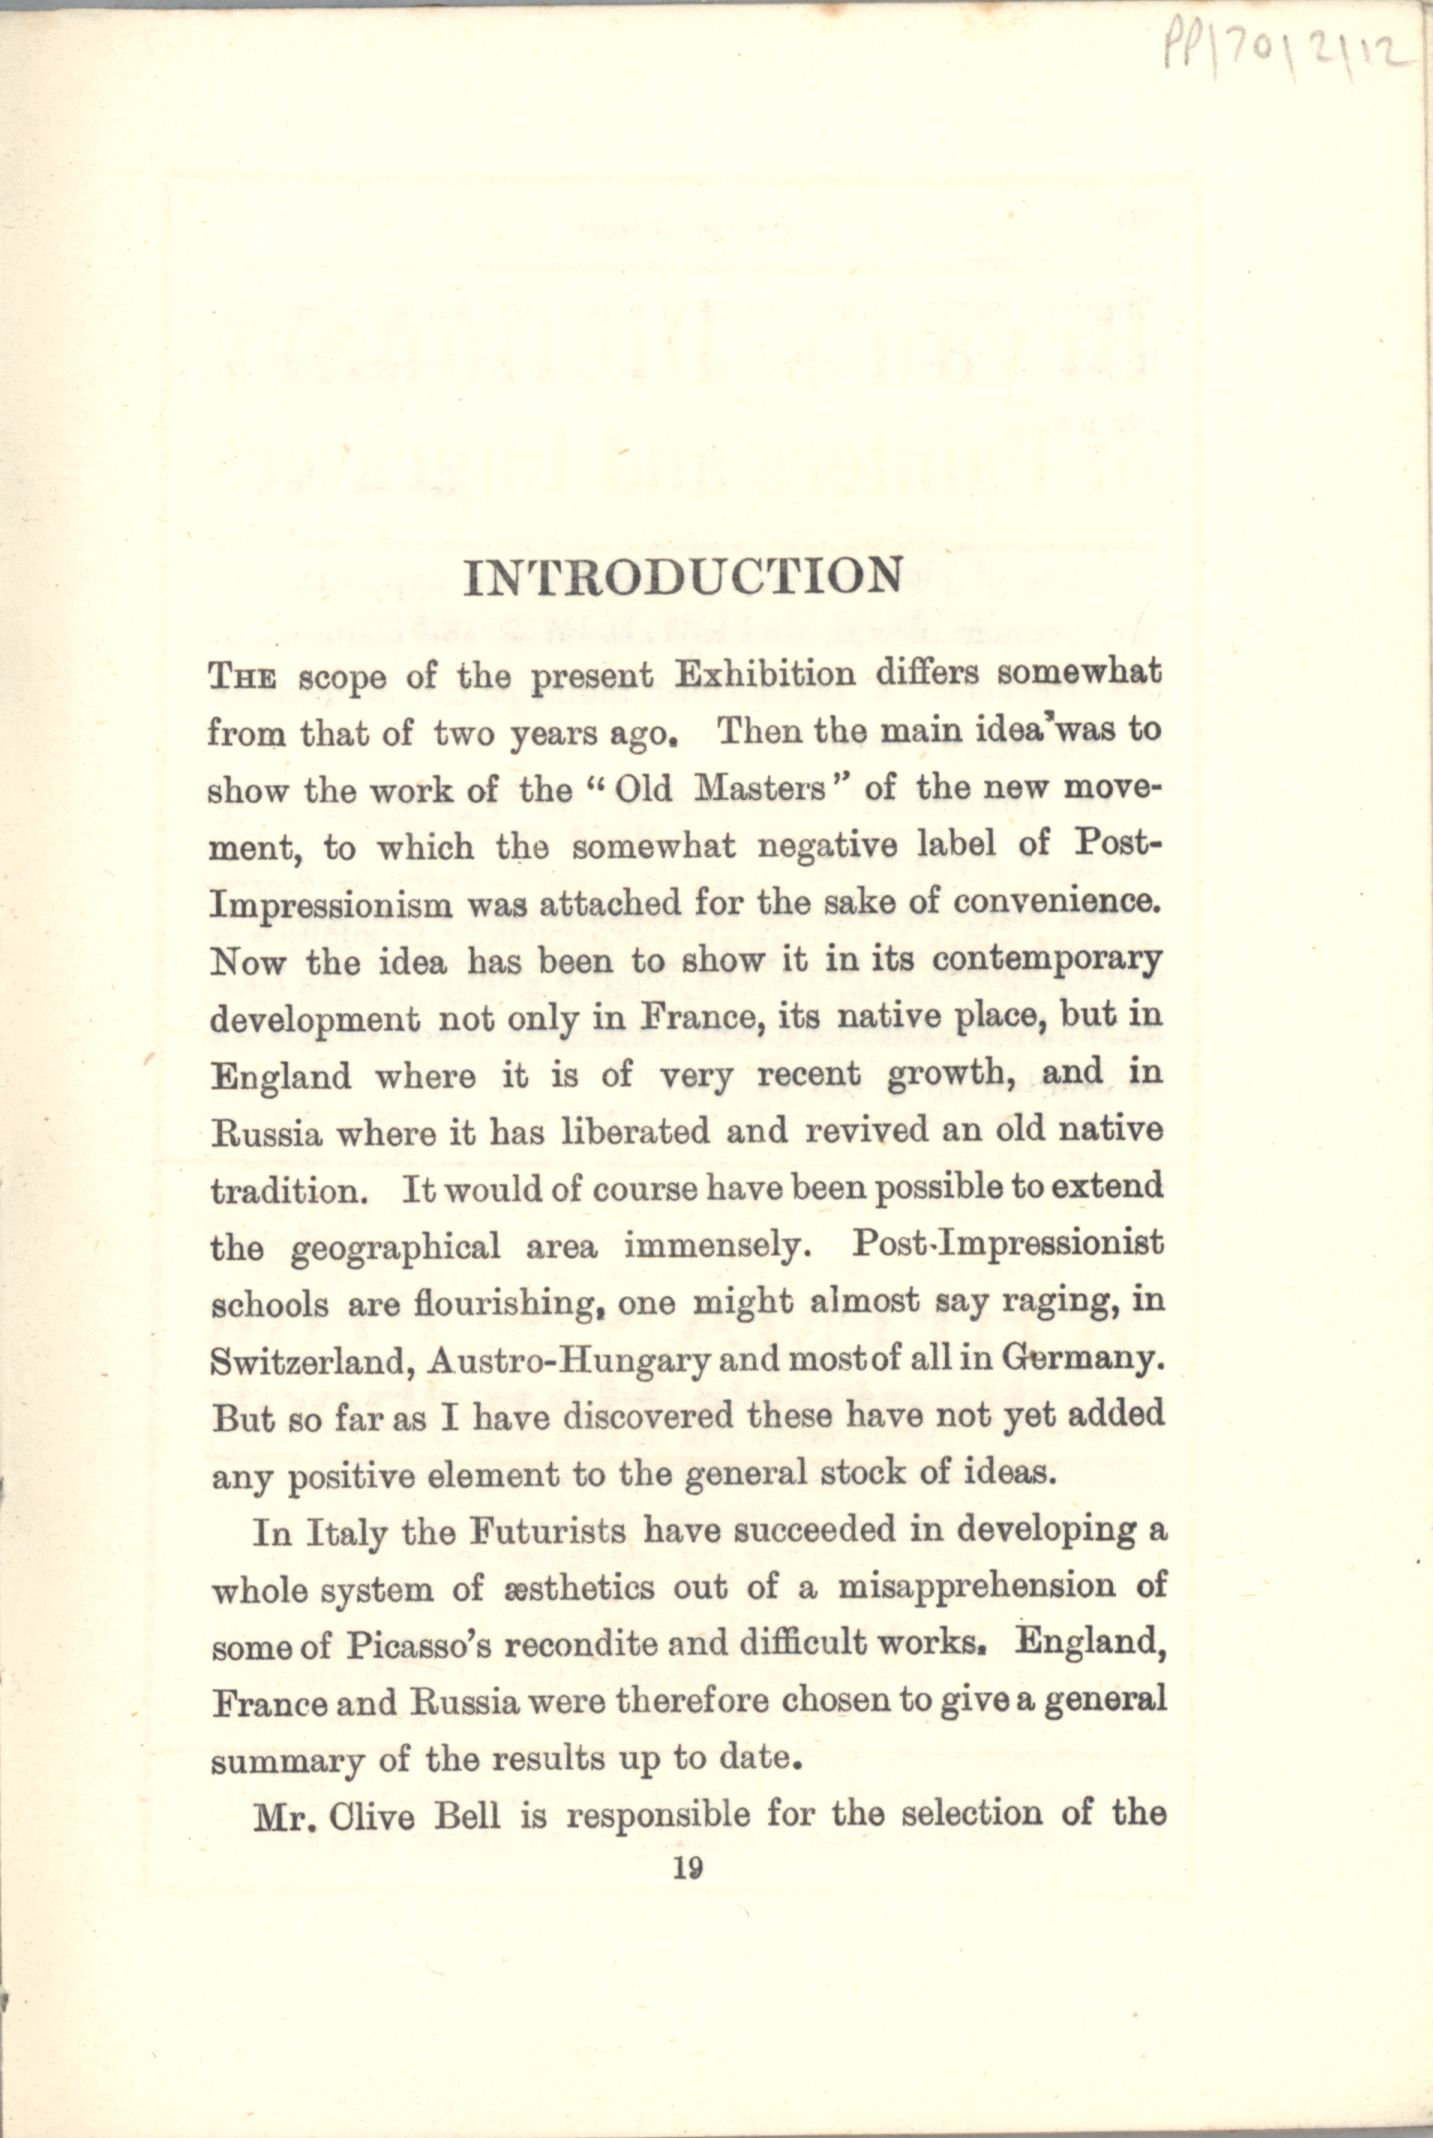 First page of the Introduction to the 'Second Post-Impressionist Exhibition' catalogue. [JMK/PP/70/2]